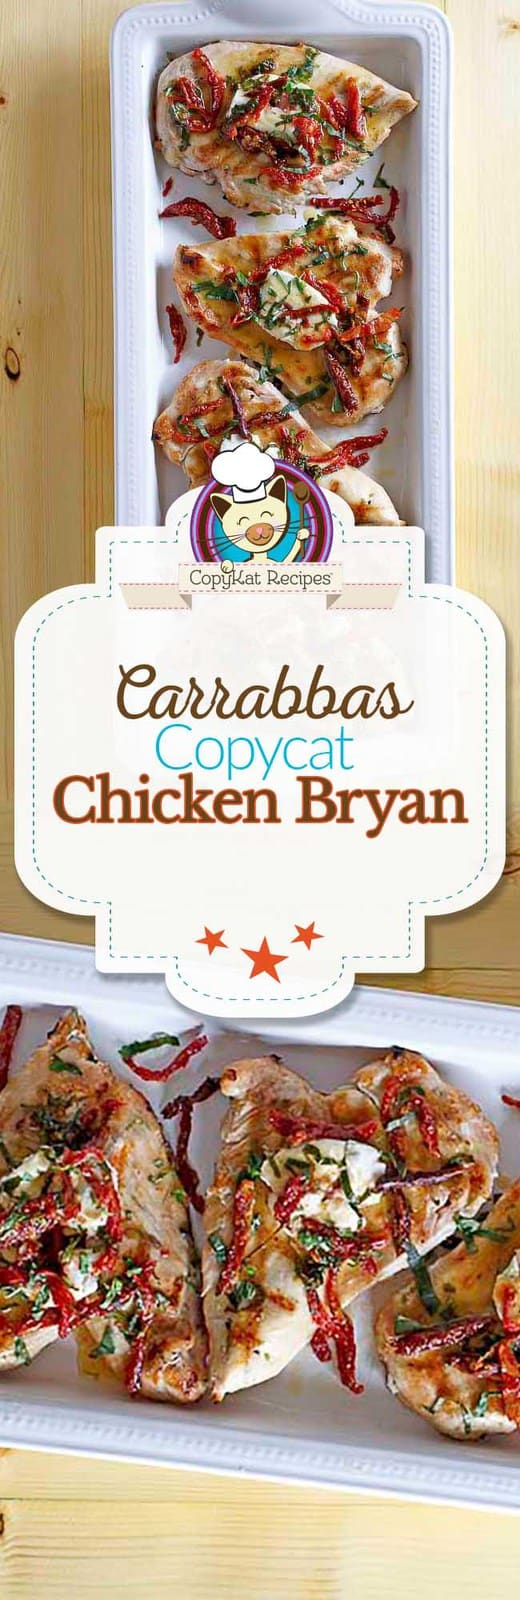 You can prepare Carrabbas Chicken Bryan just like Carrabbas with this easy copycat recipe.